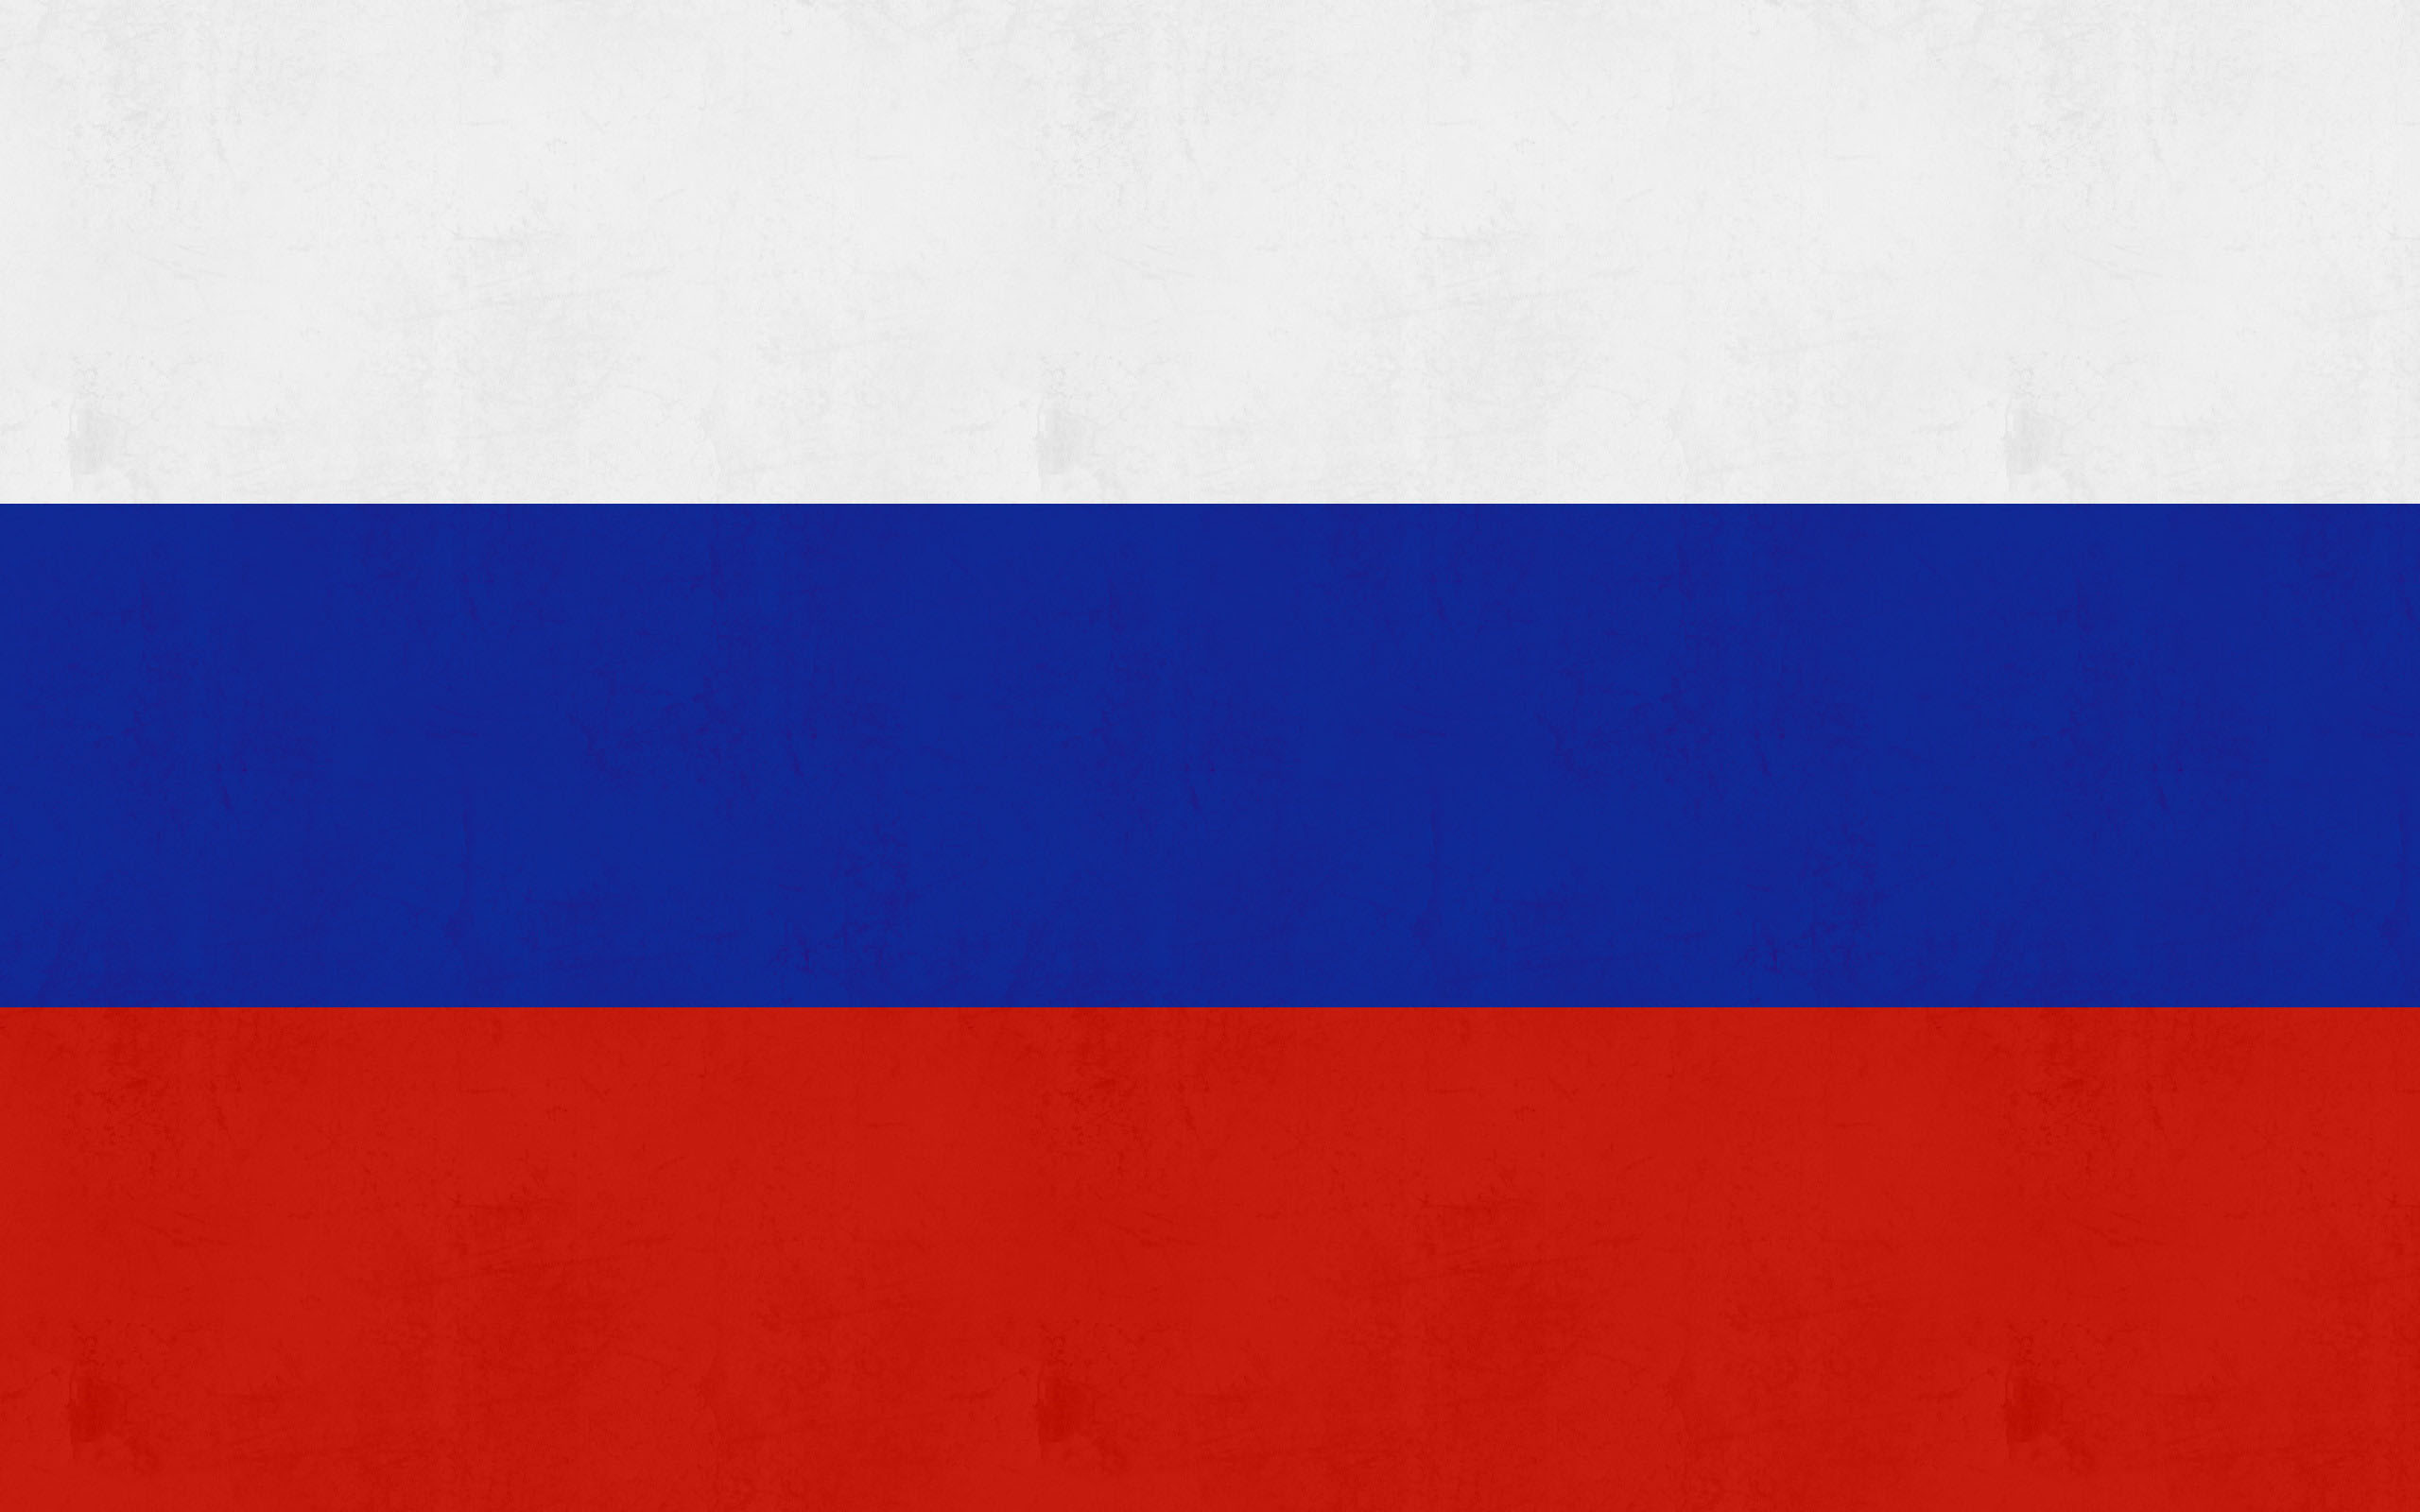 Pictured here is the Russia flag.